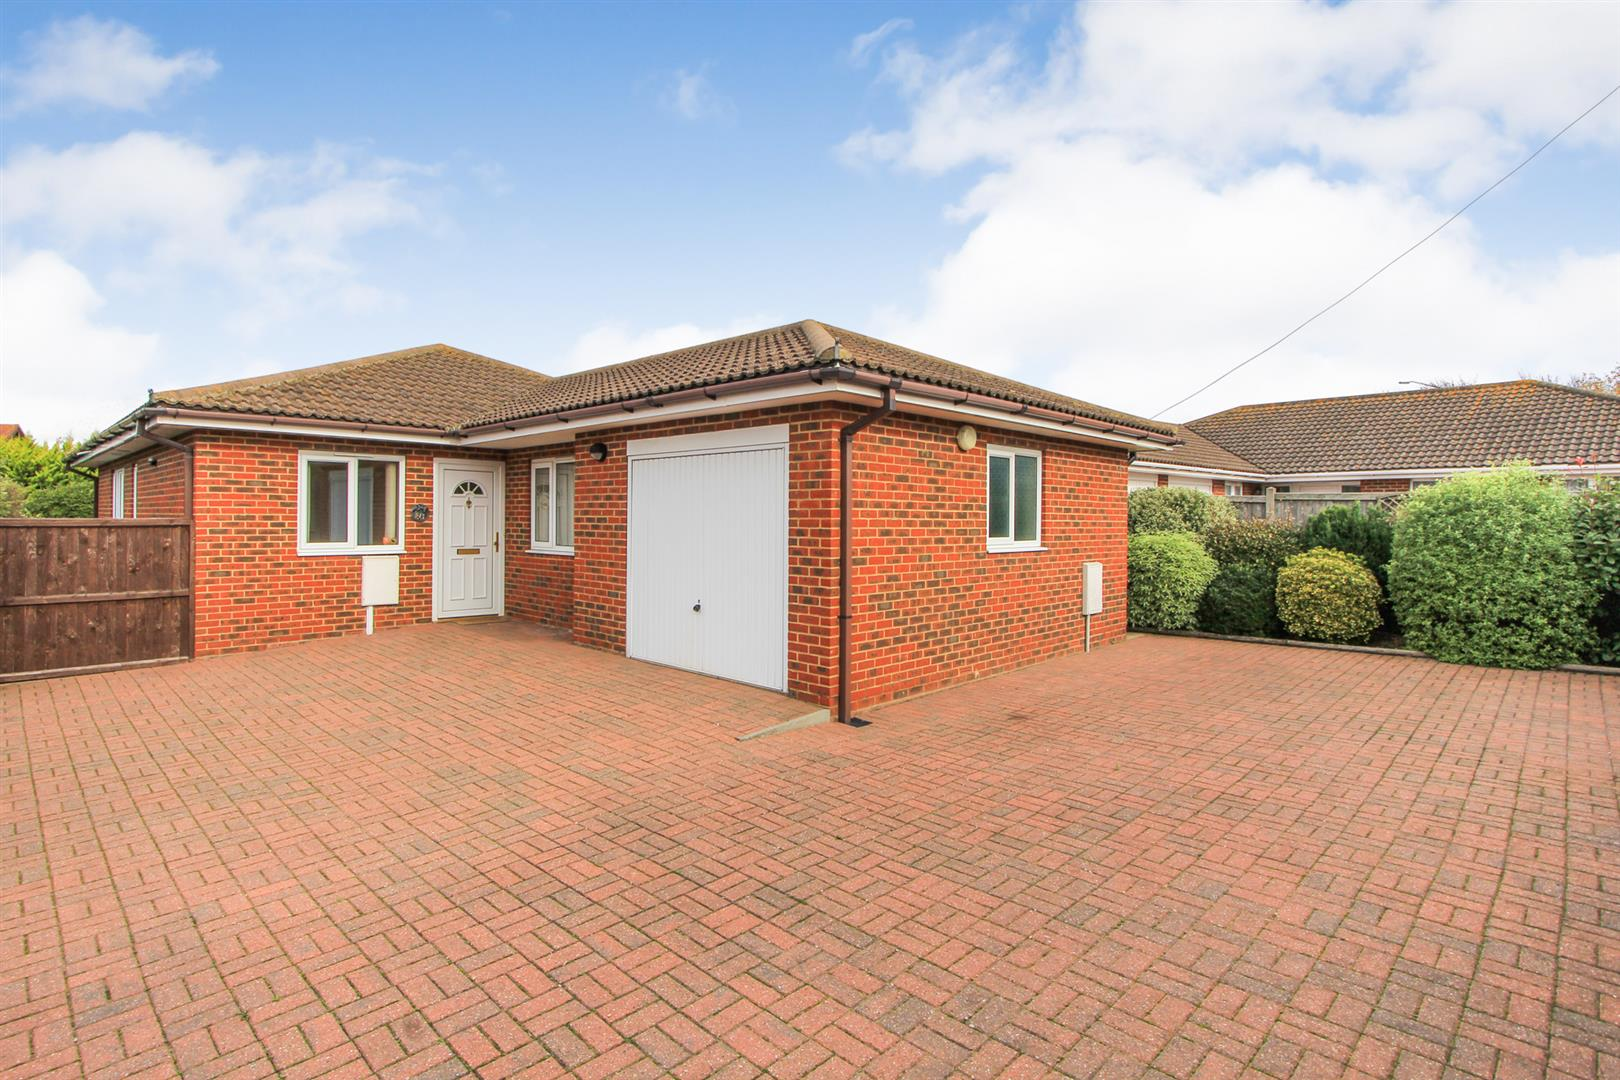 3 Bedrooms Detached Bungalow for sale in Church Street, Whitstable